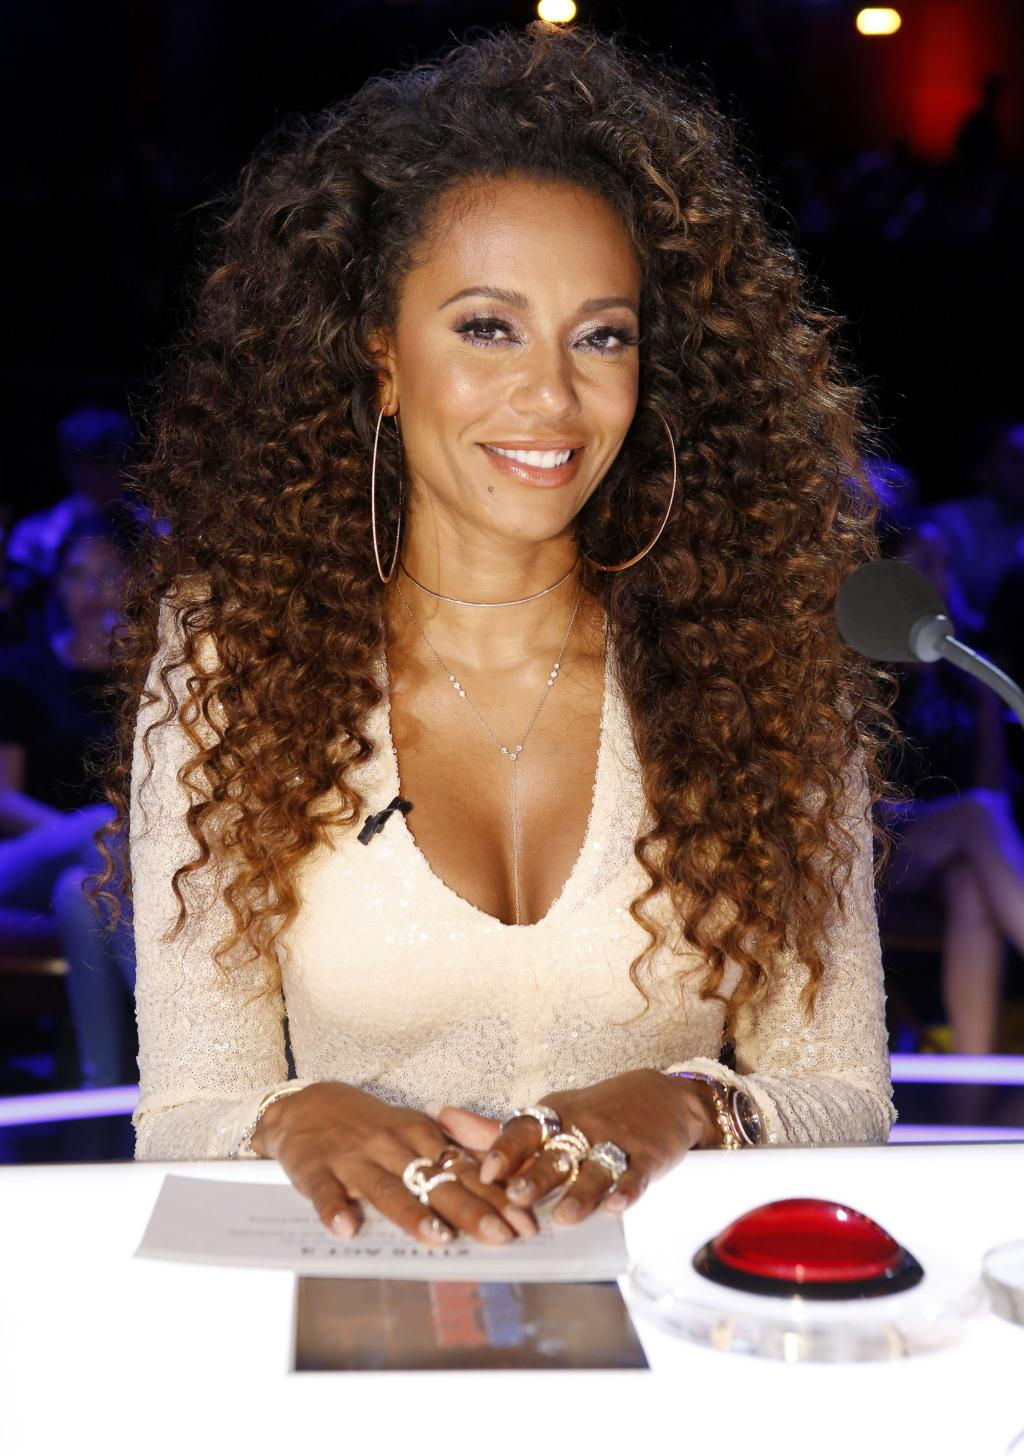 Mel B Offers Hefty Reward to Catch Thief Who Allegedly Broke into Car:   'I Want This Guy Caught